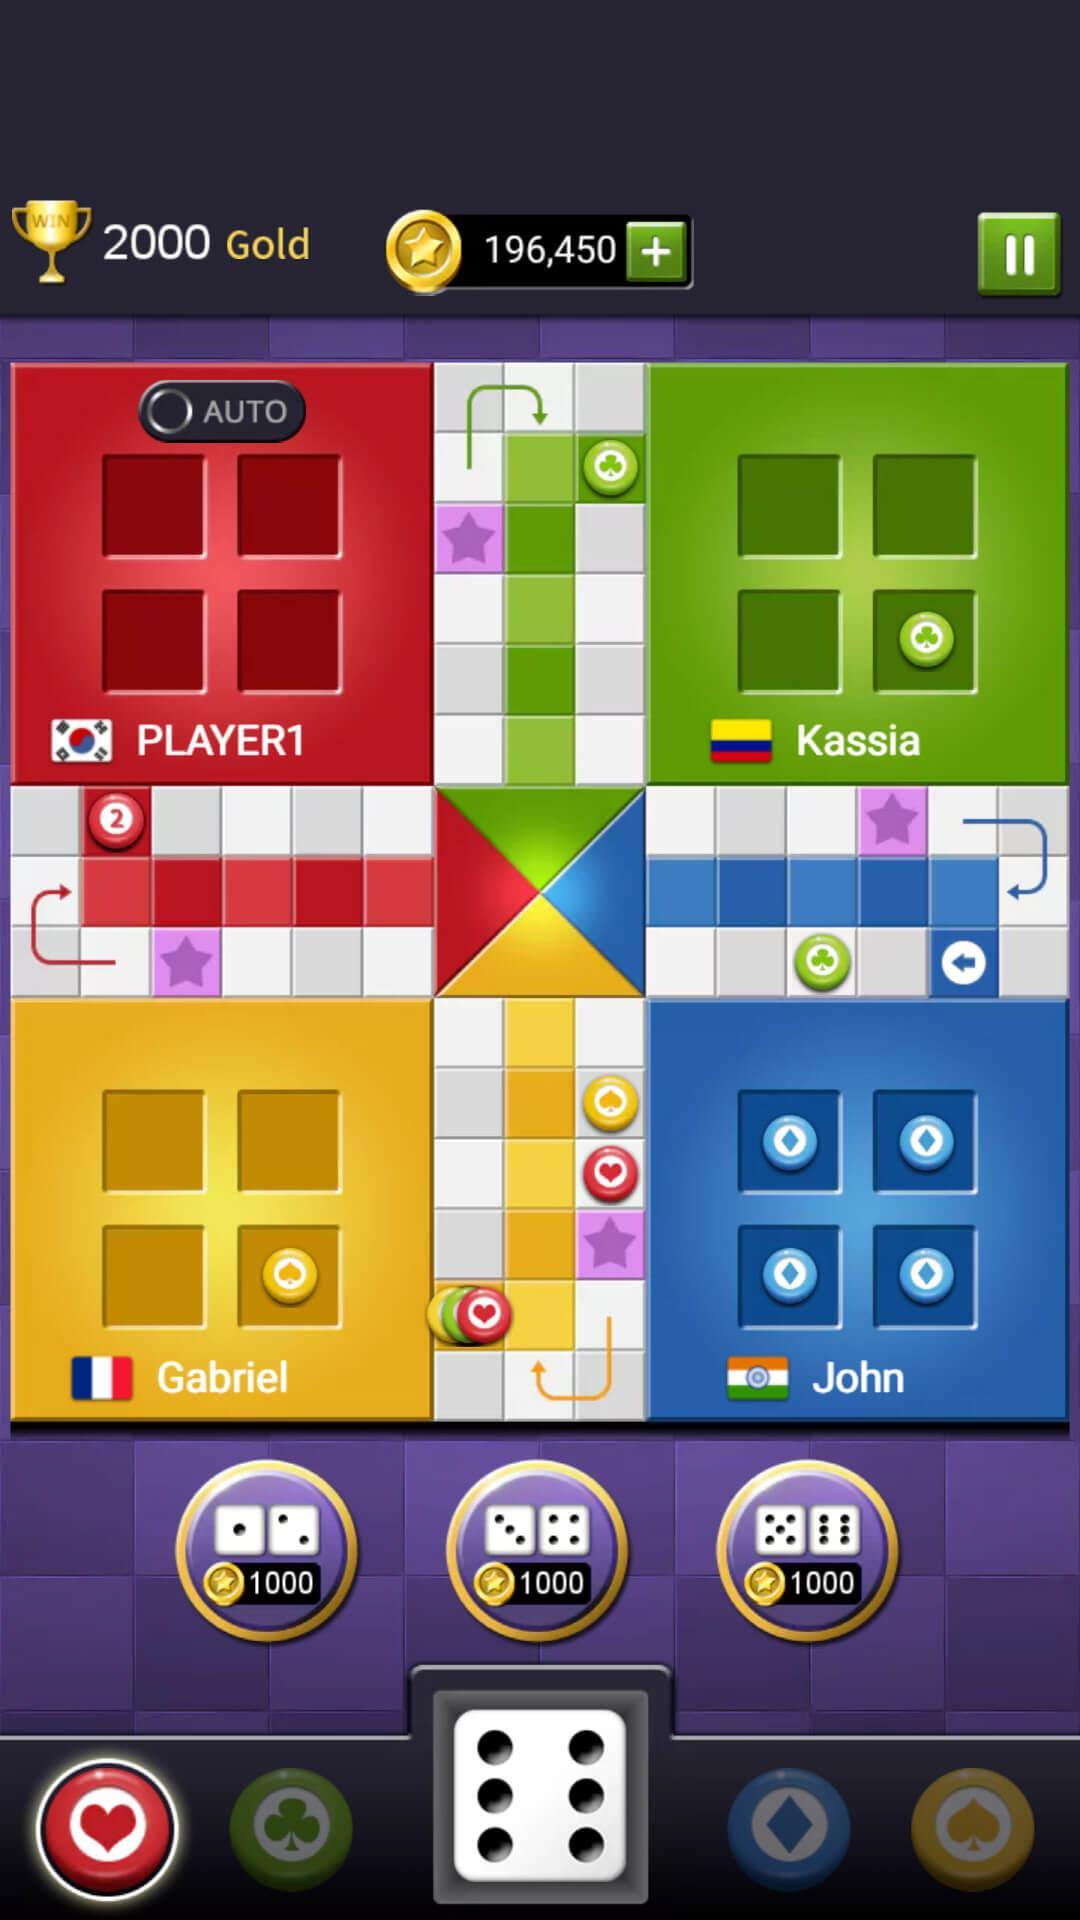 Ludo Championship for Android - APK Download